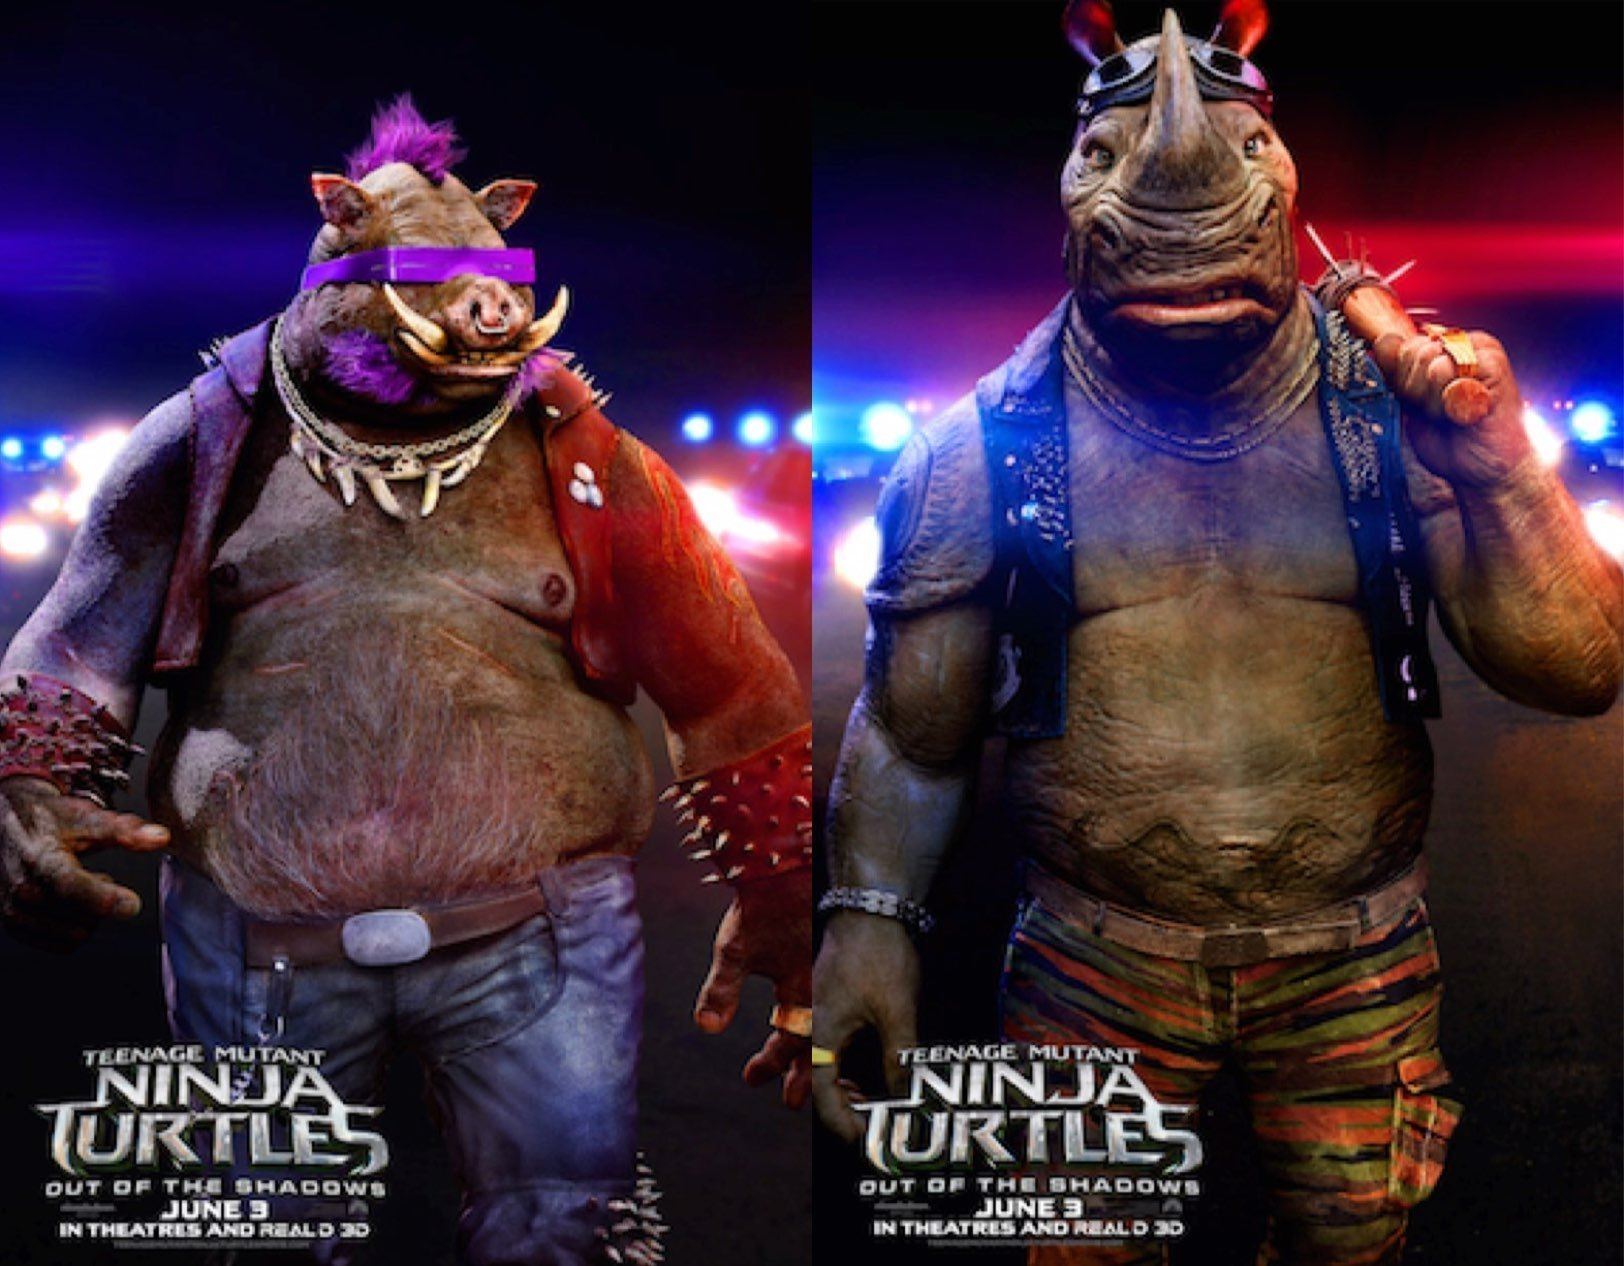 Ninja Turtles 2 Out of the Shadows posters van Bebop & Rocksteady